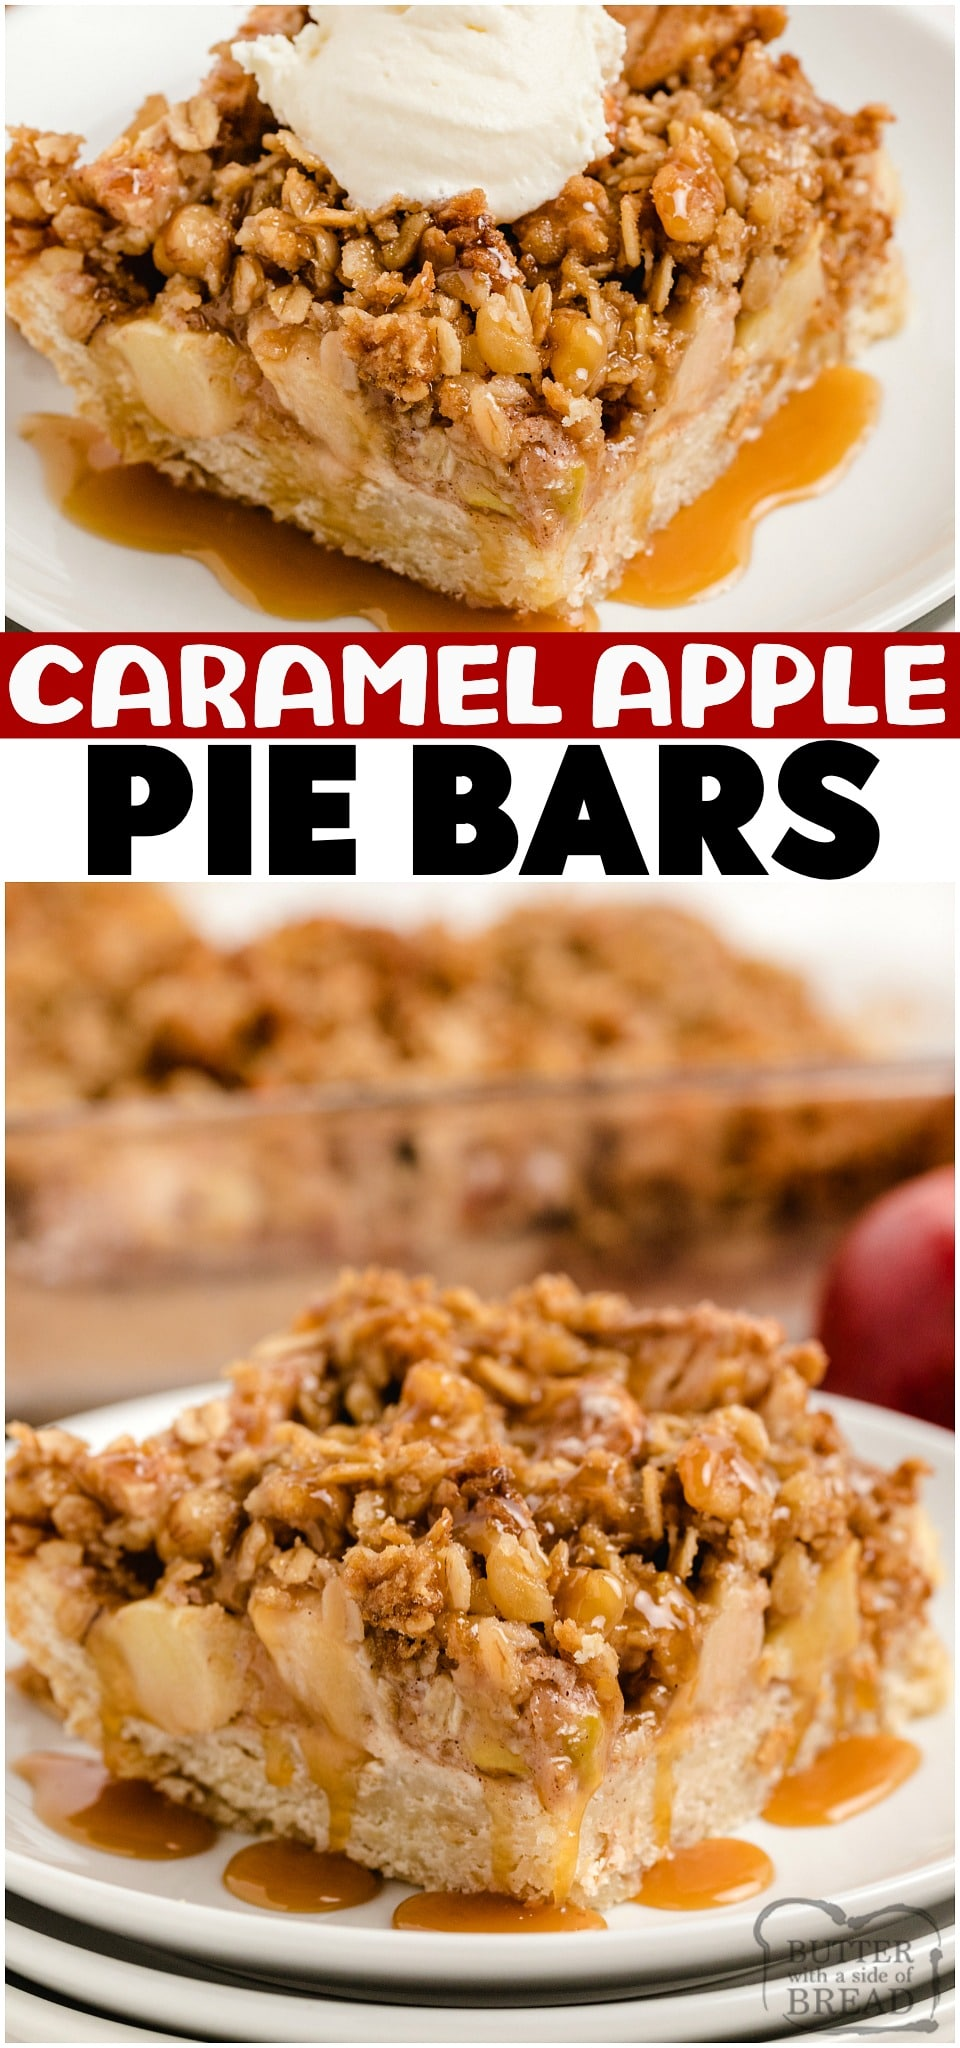 Apple Pie Bars topped with a buttery crumble & drizzled with caramel for a fantastic take on a classic apple pie! Perfect baked apples recipe for a no-fuss alternative to apple pie. Apple pie bars are easier to make, simple to serve and everyone loves them! #applepie #apples #pie #dessert #caramelapple #slabpie #baking #recipe from BUTTER WITH A SIDE OF BREAD